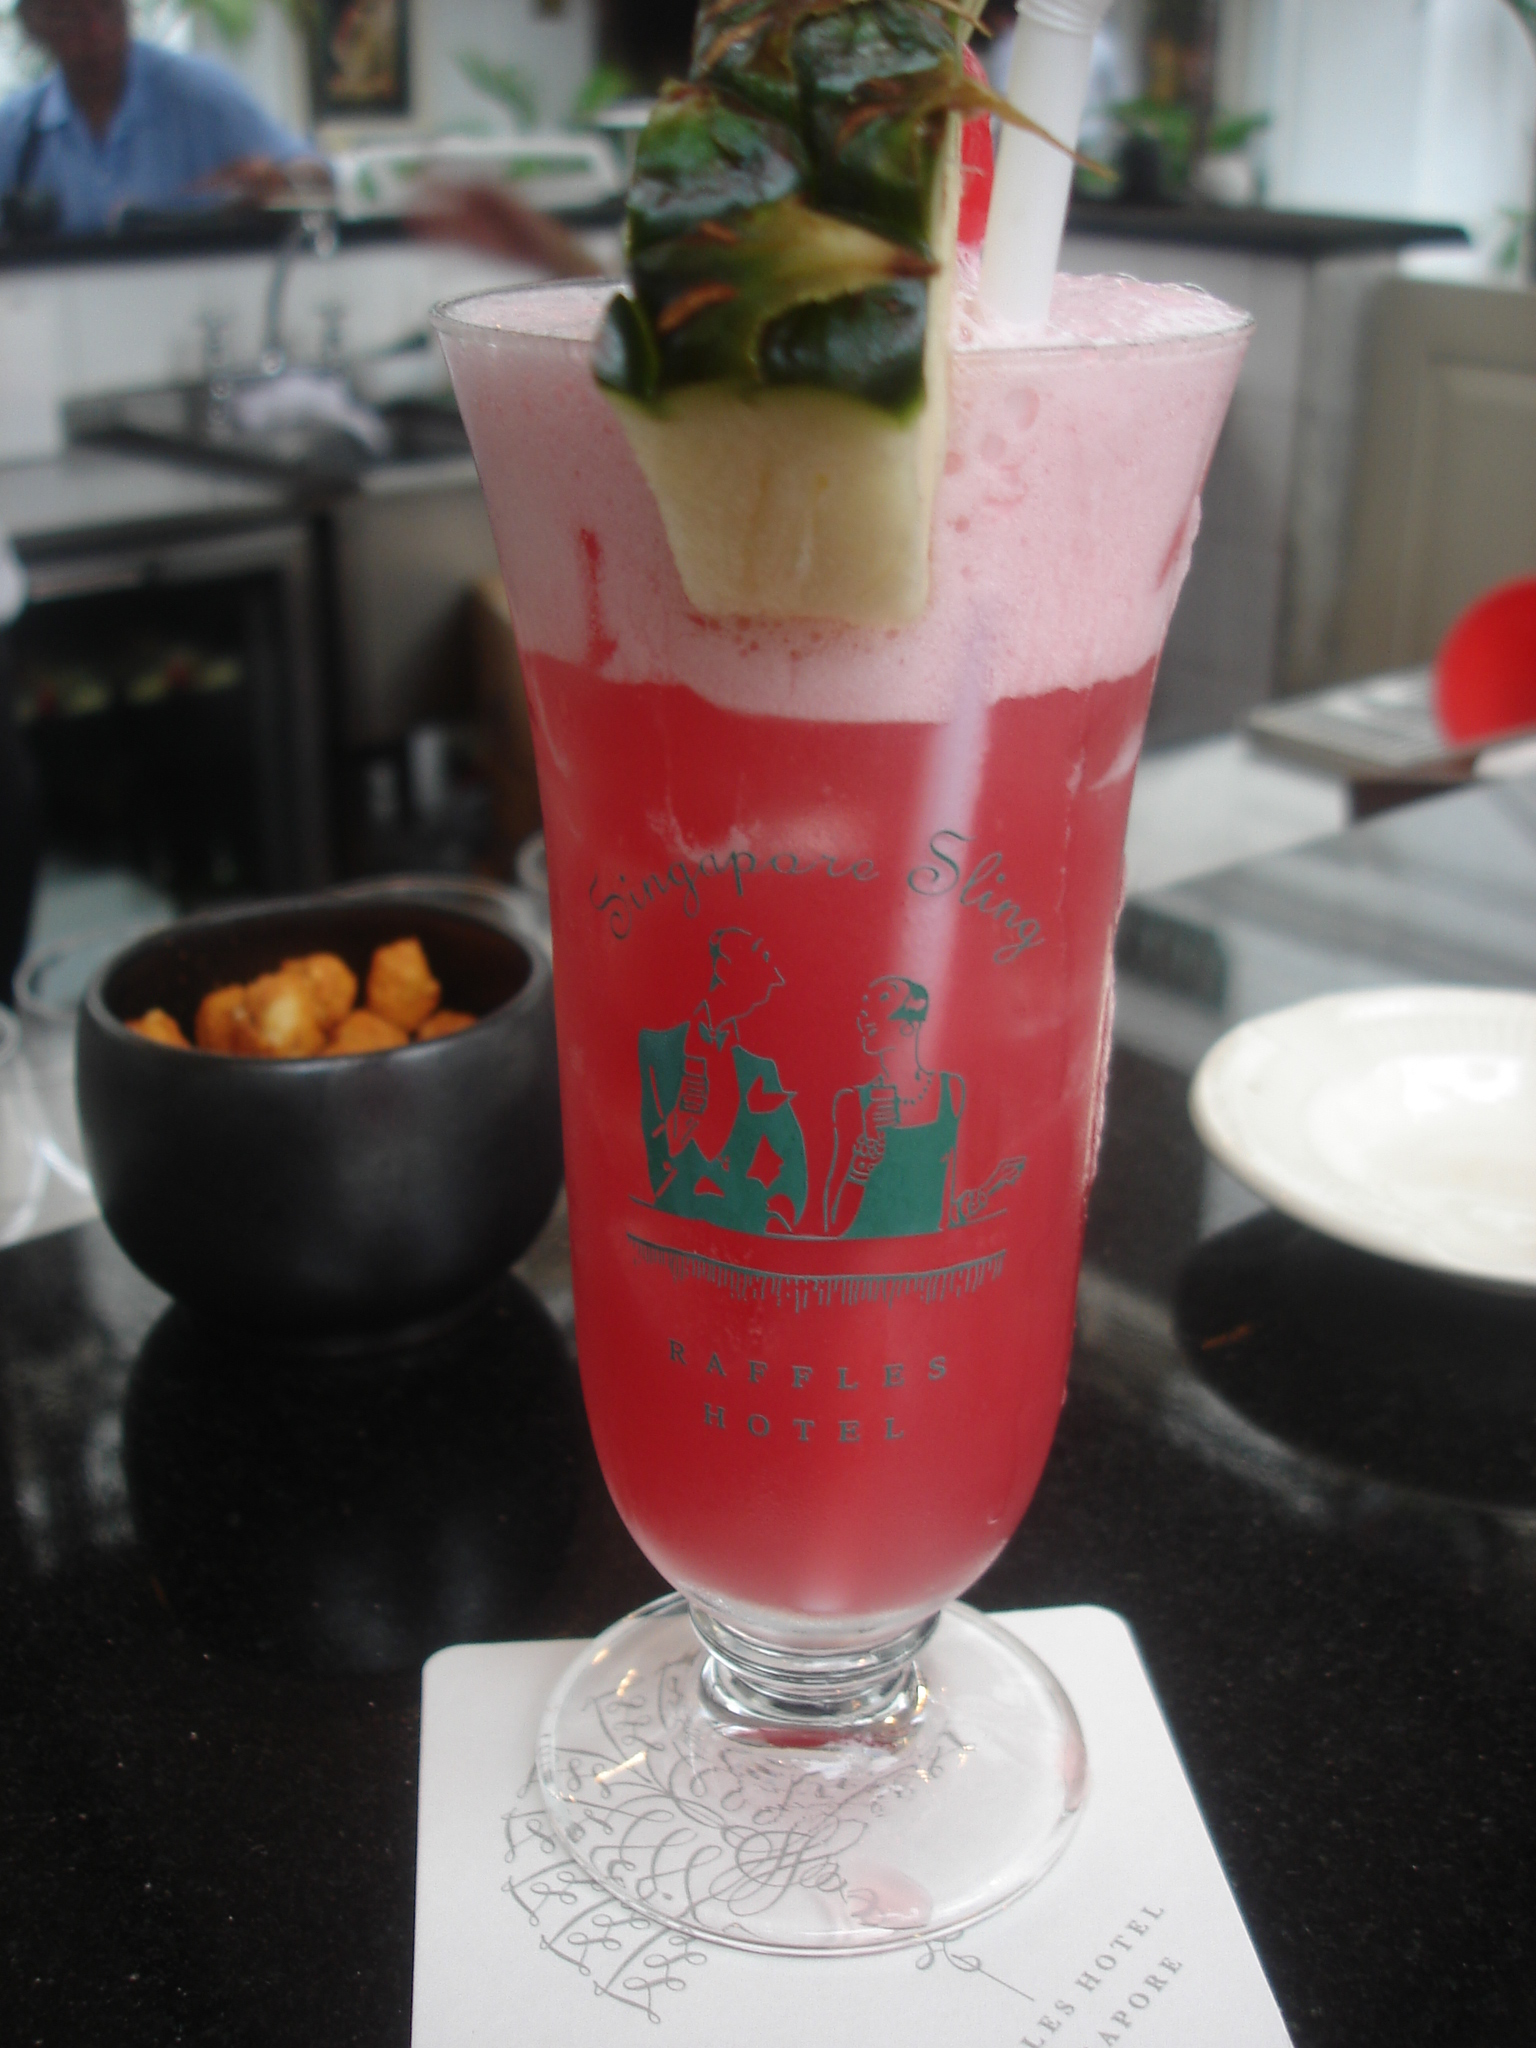 File:Singapore Sling.jpg - Wikimedia Commons